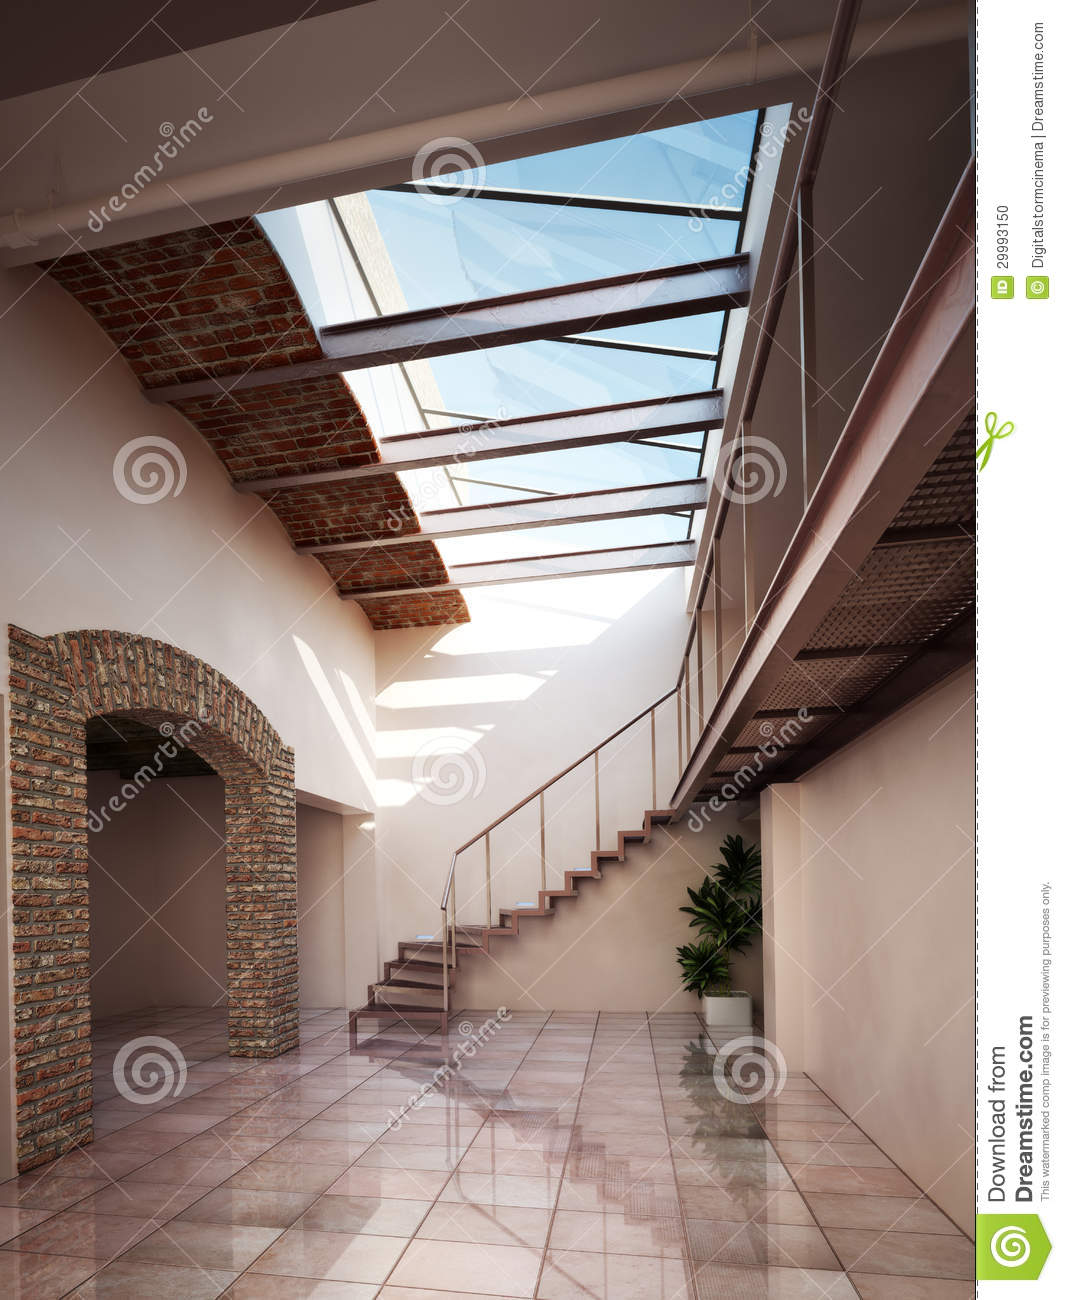 Empty Room With Rustic Brick And Ceiling Skylights Stock